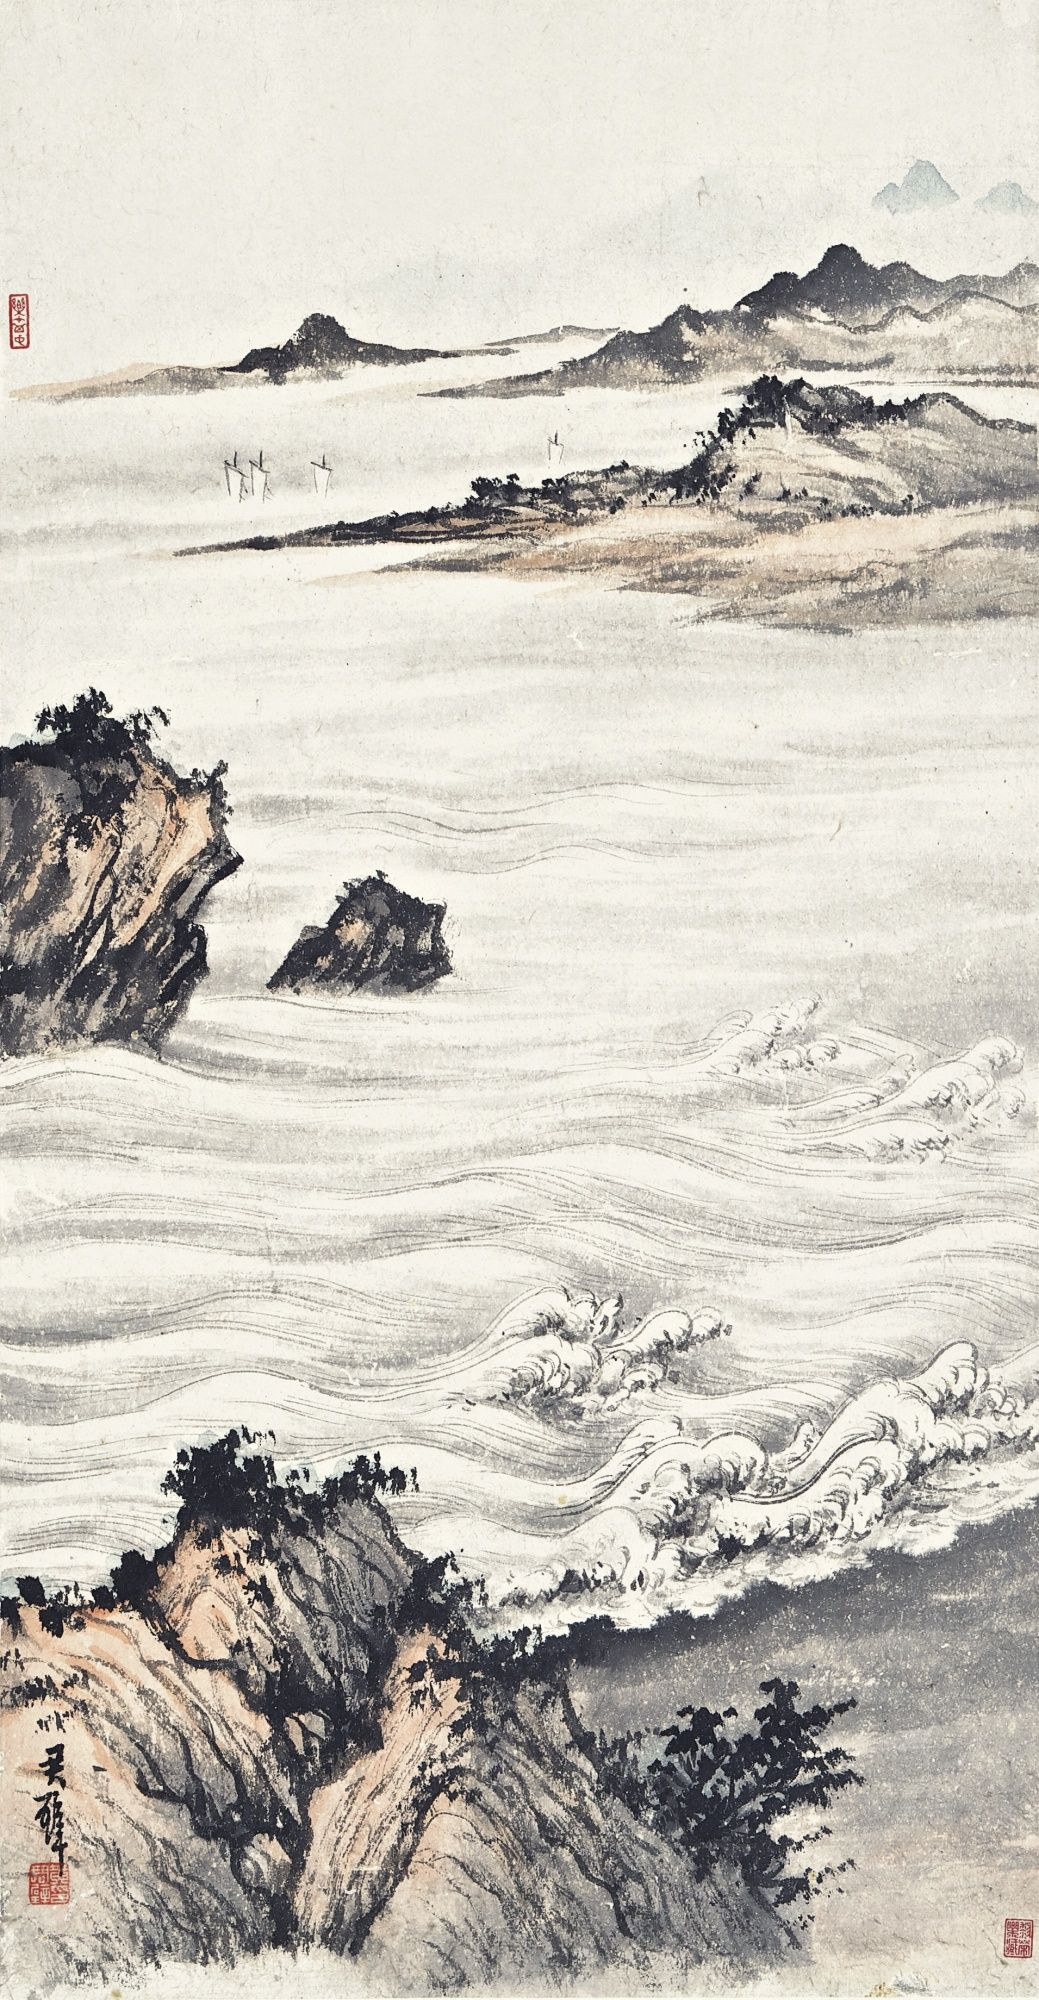 CRUSHING WAVES AGAINST THE SHORES by HUANG JUNBI, Lot | Sotheby's